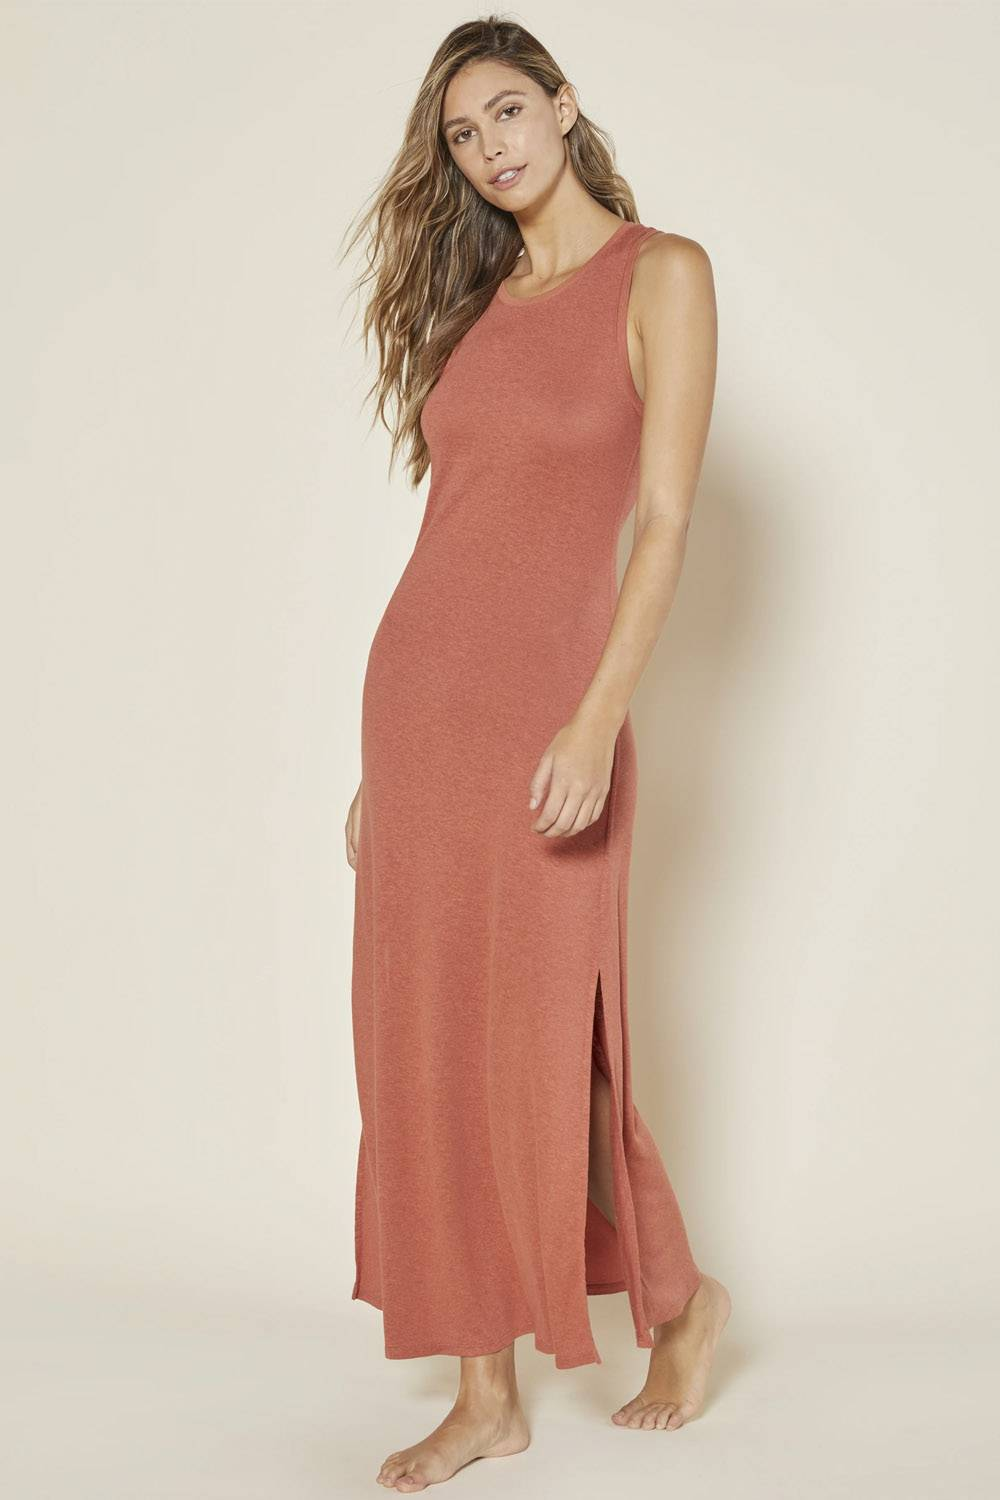 outerknown elegant special occasion dress